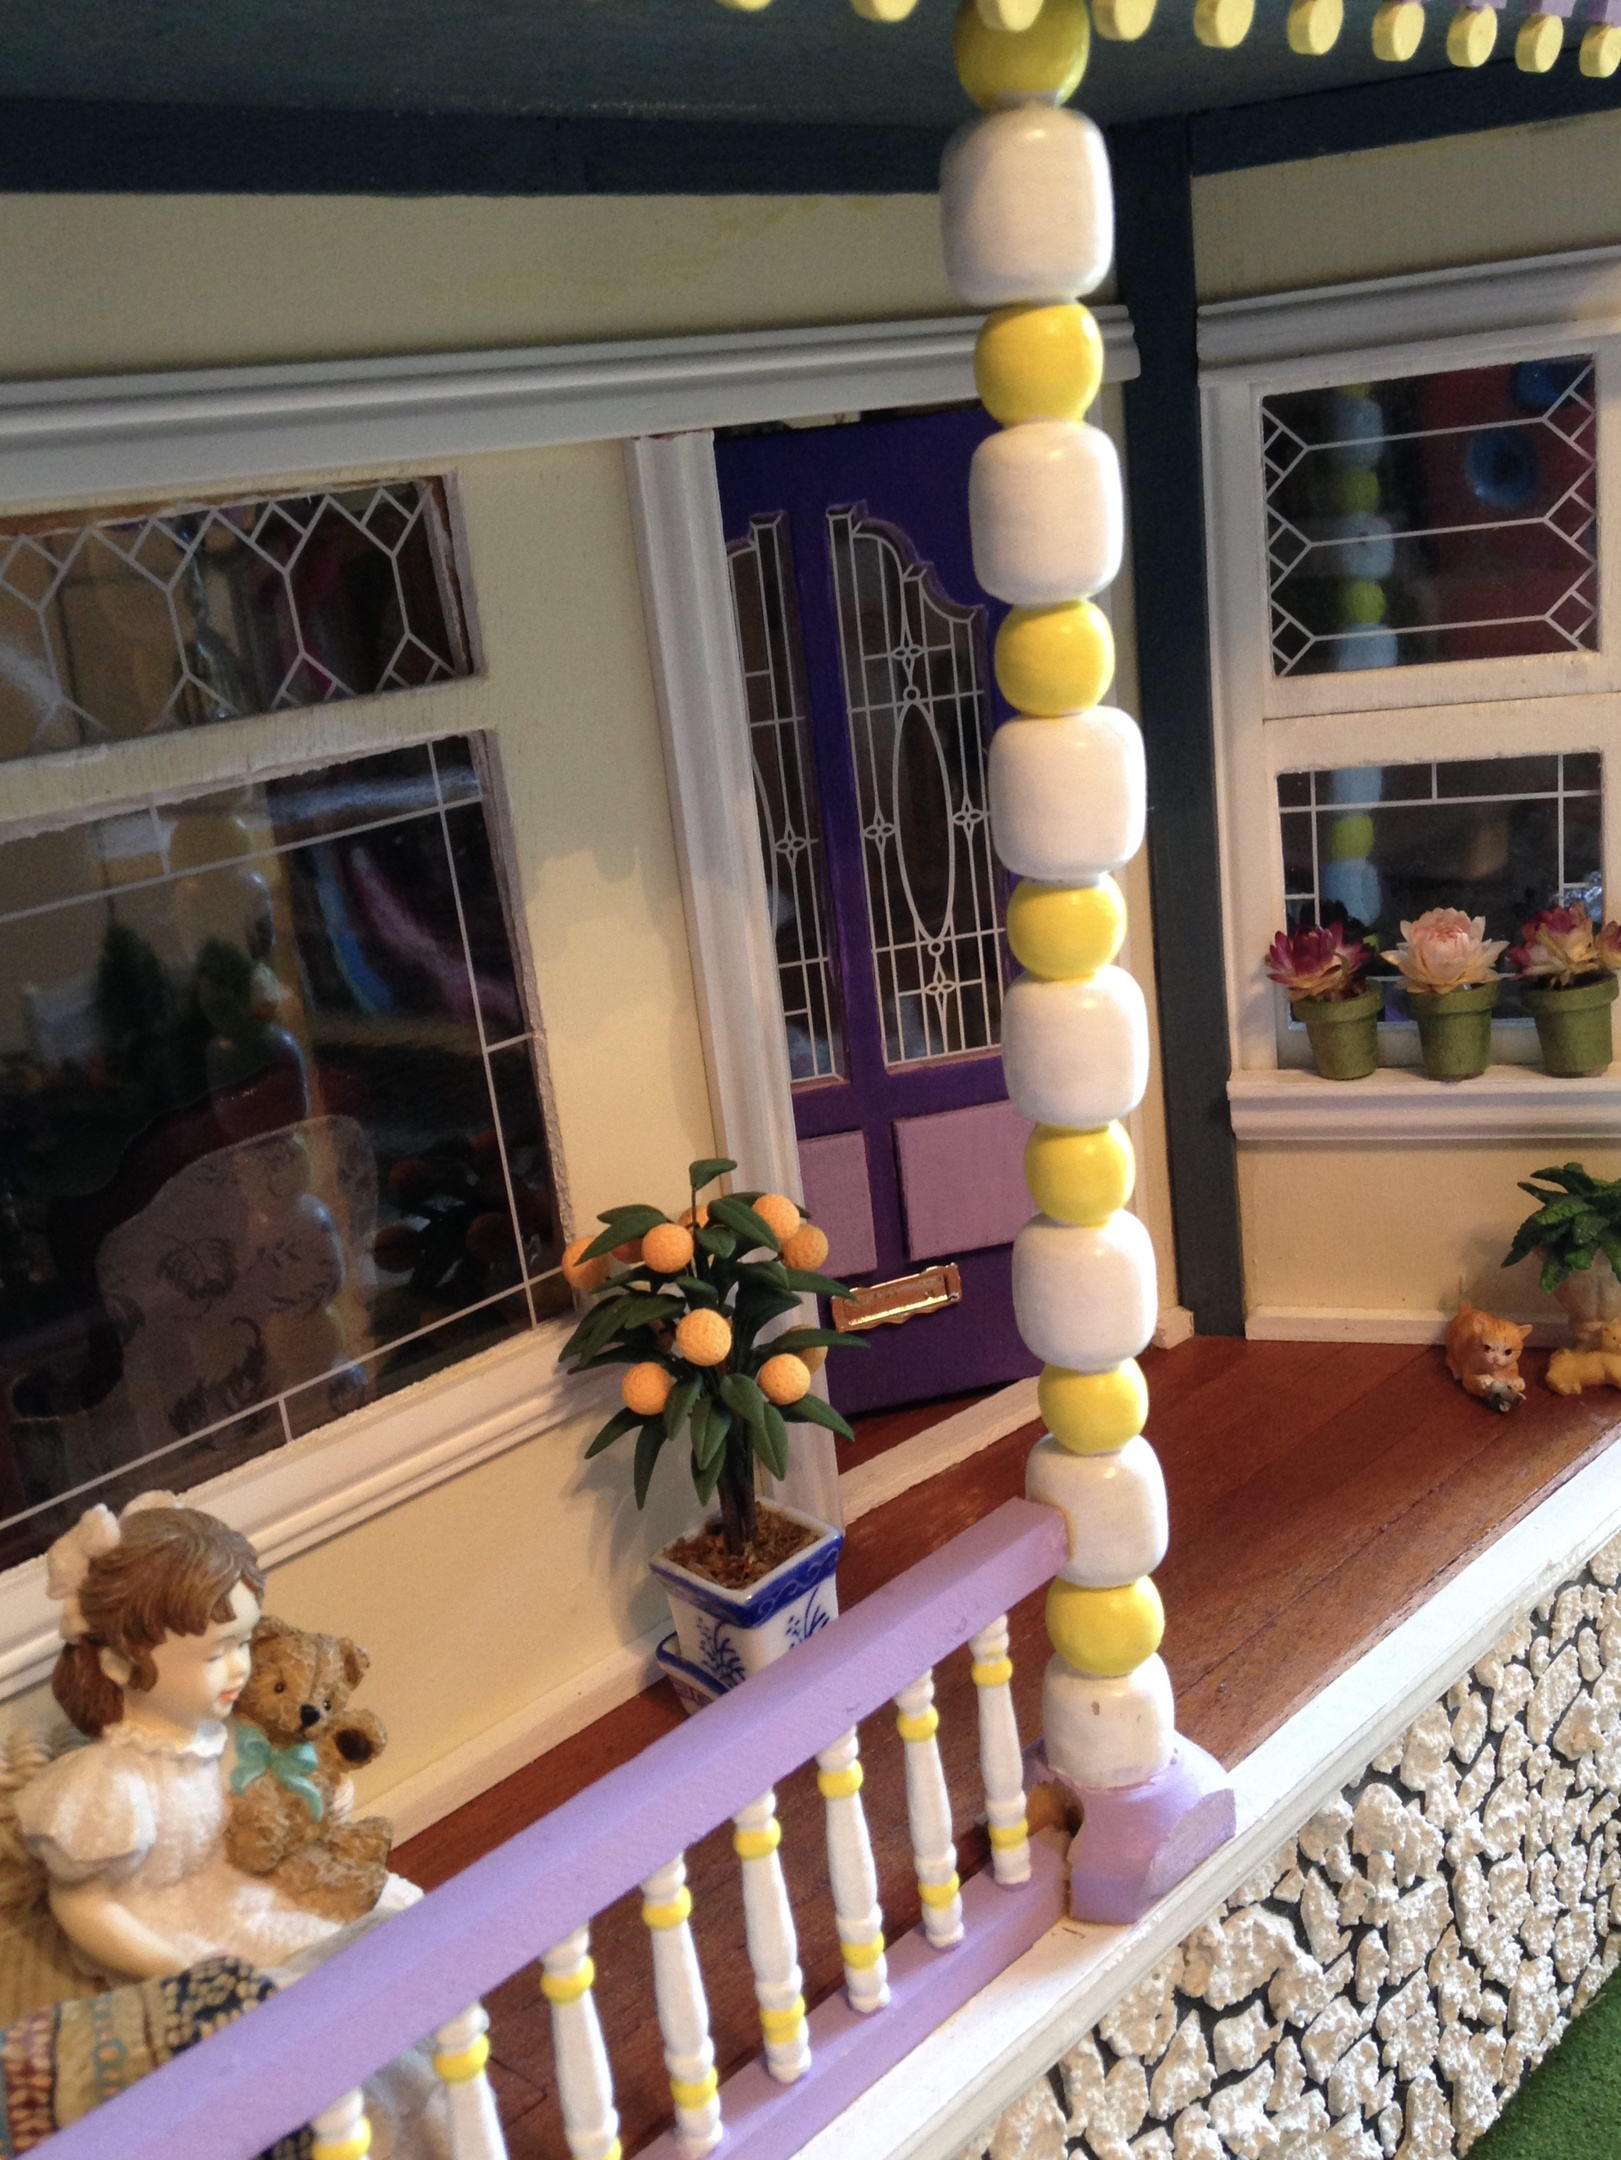 My Victorian Painted Lady Dollhouse Porch And Living Room